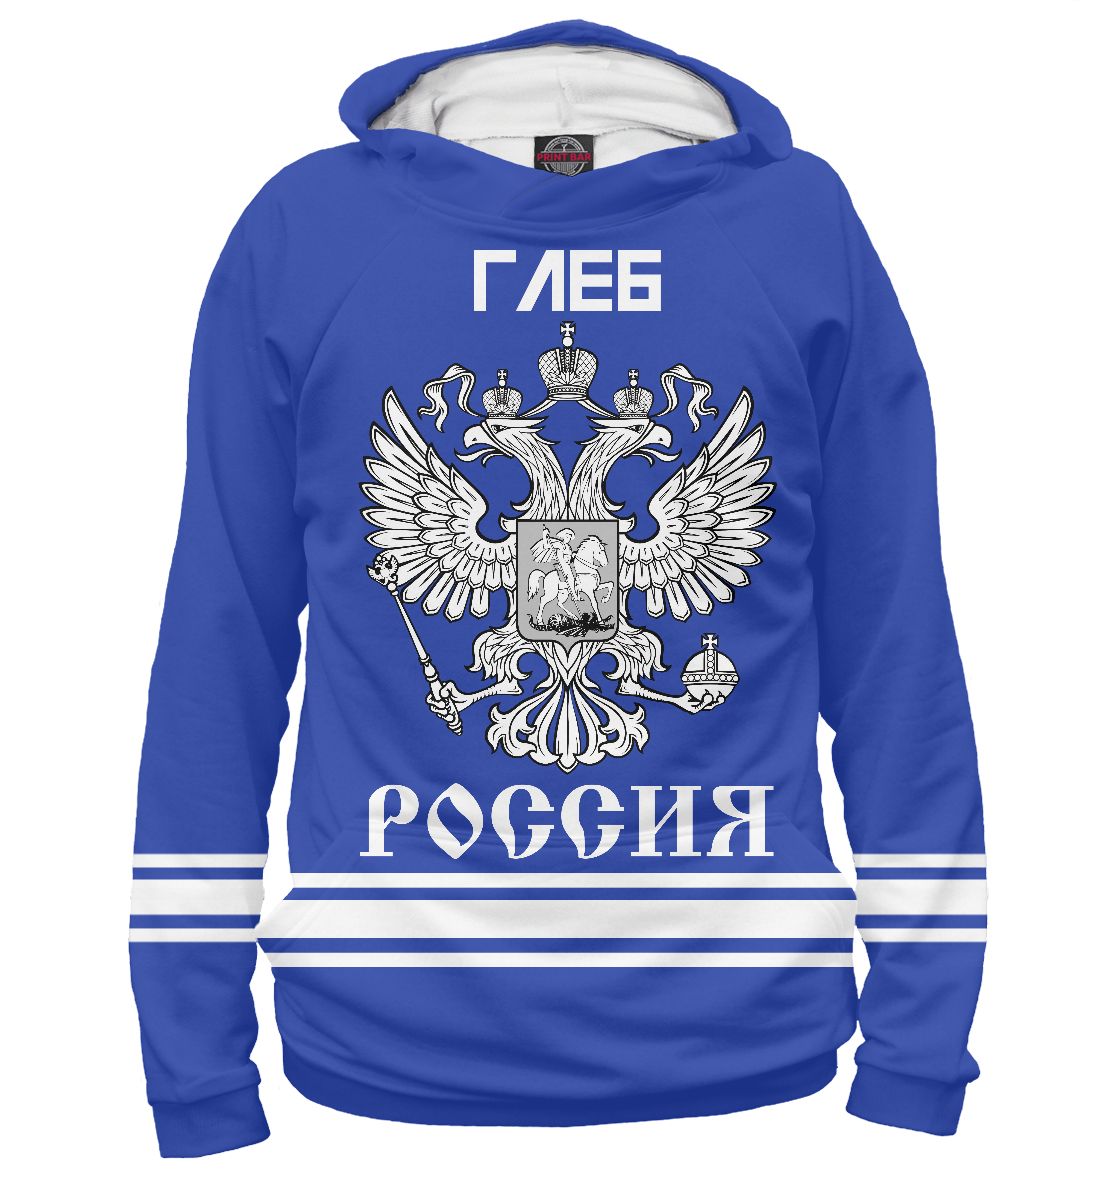 ГЛЕБ sport russia collection pillow seaweed collection premium production company ecotex russia